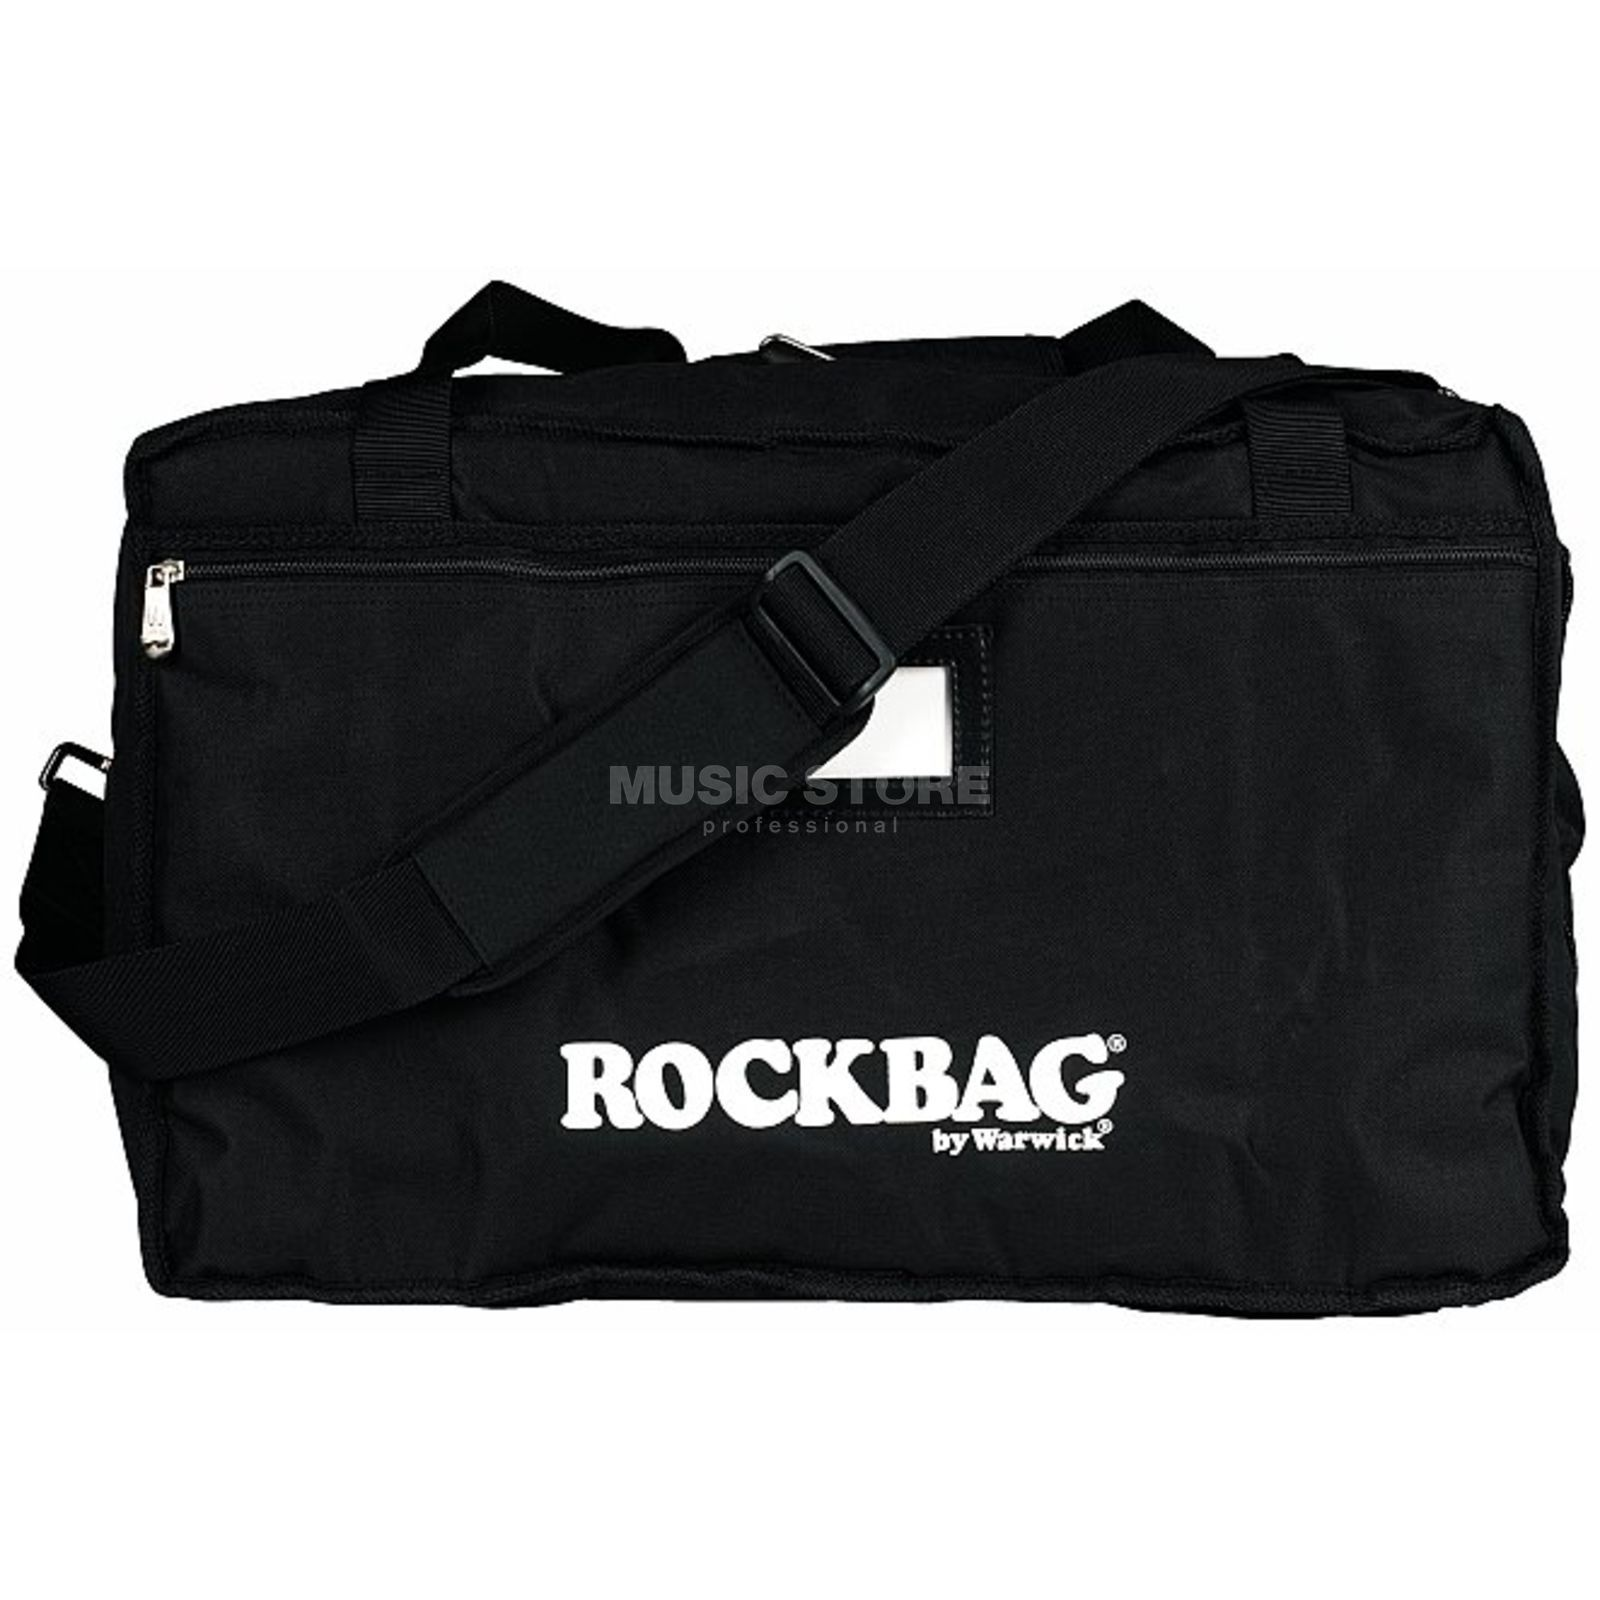 Rockbag Cajon Bag RB 22761 B, 53 x 33 x 32cm Изображение товара